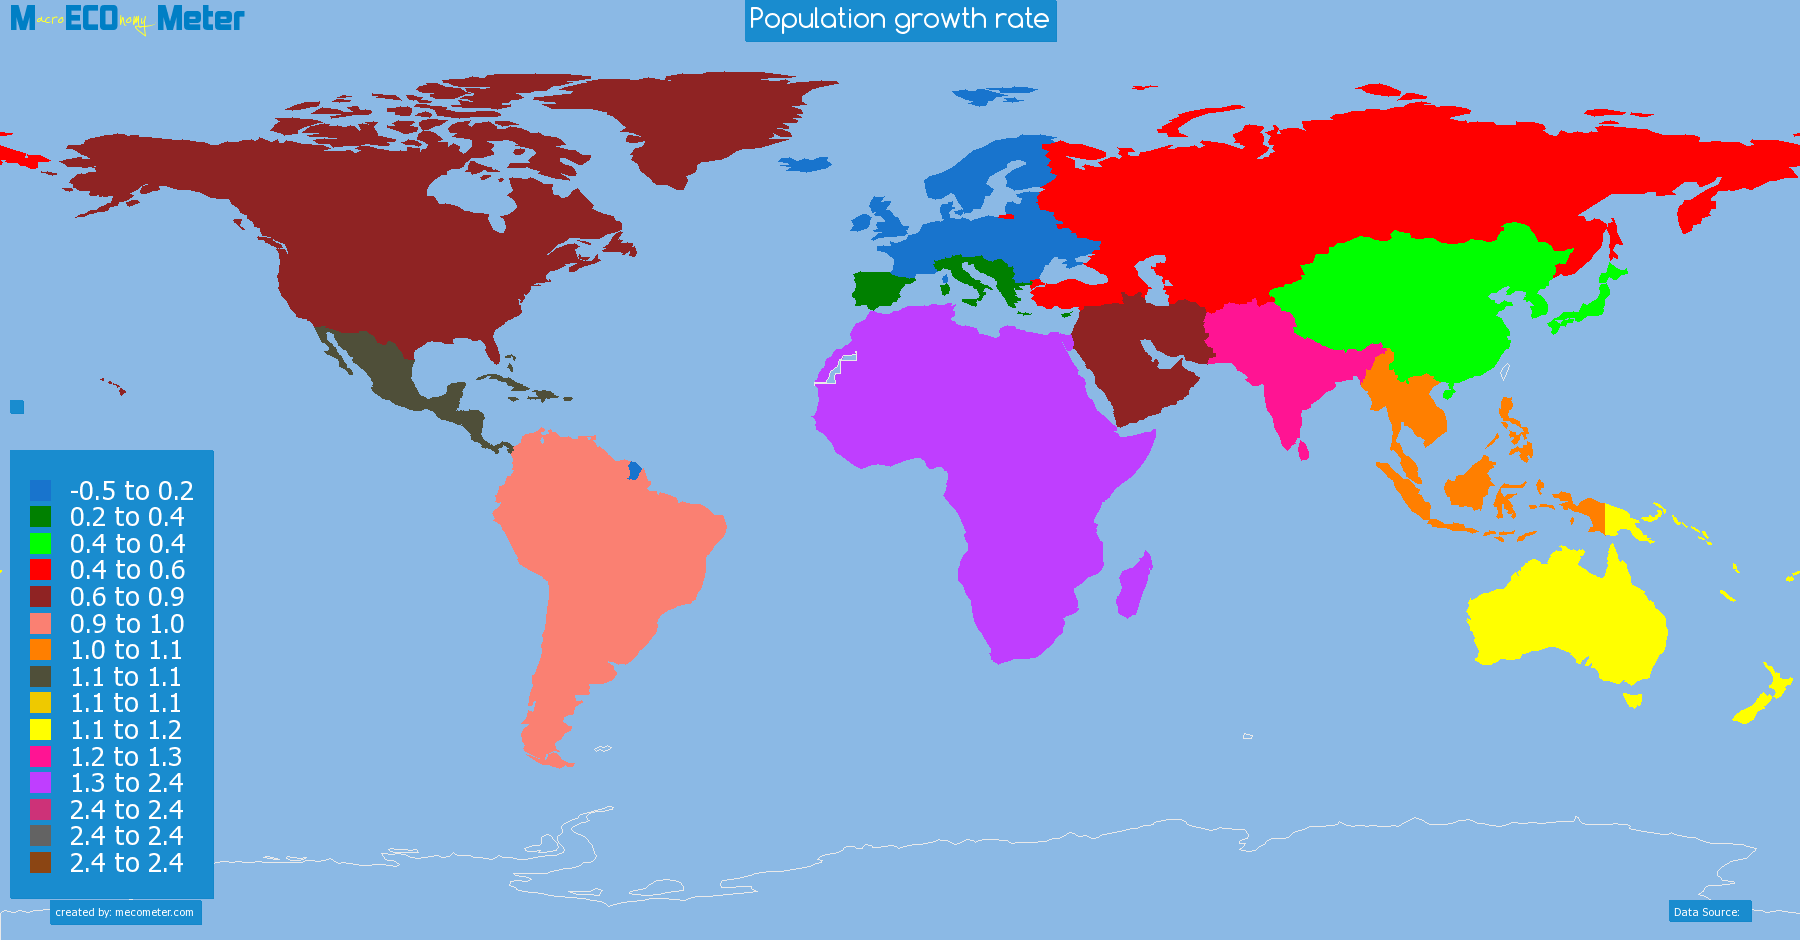 Population growth rate by region